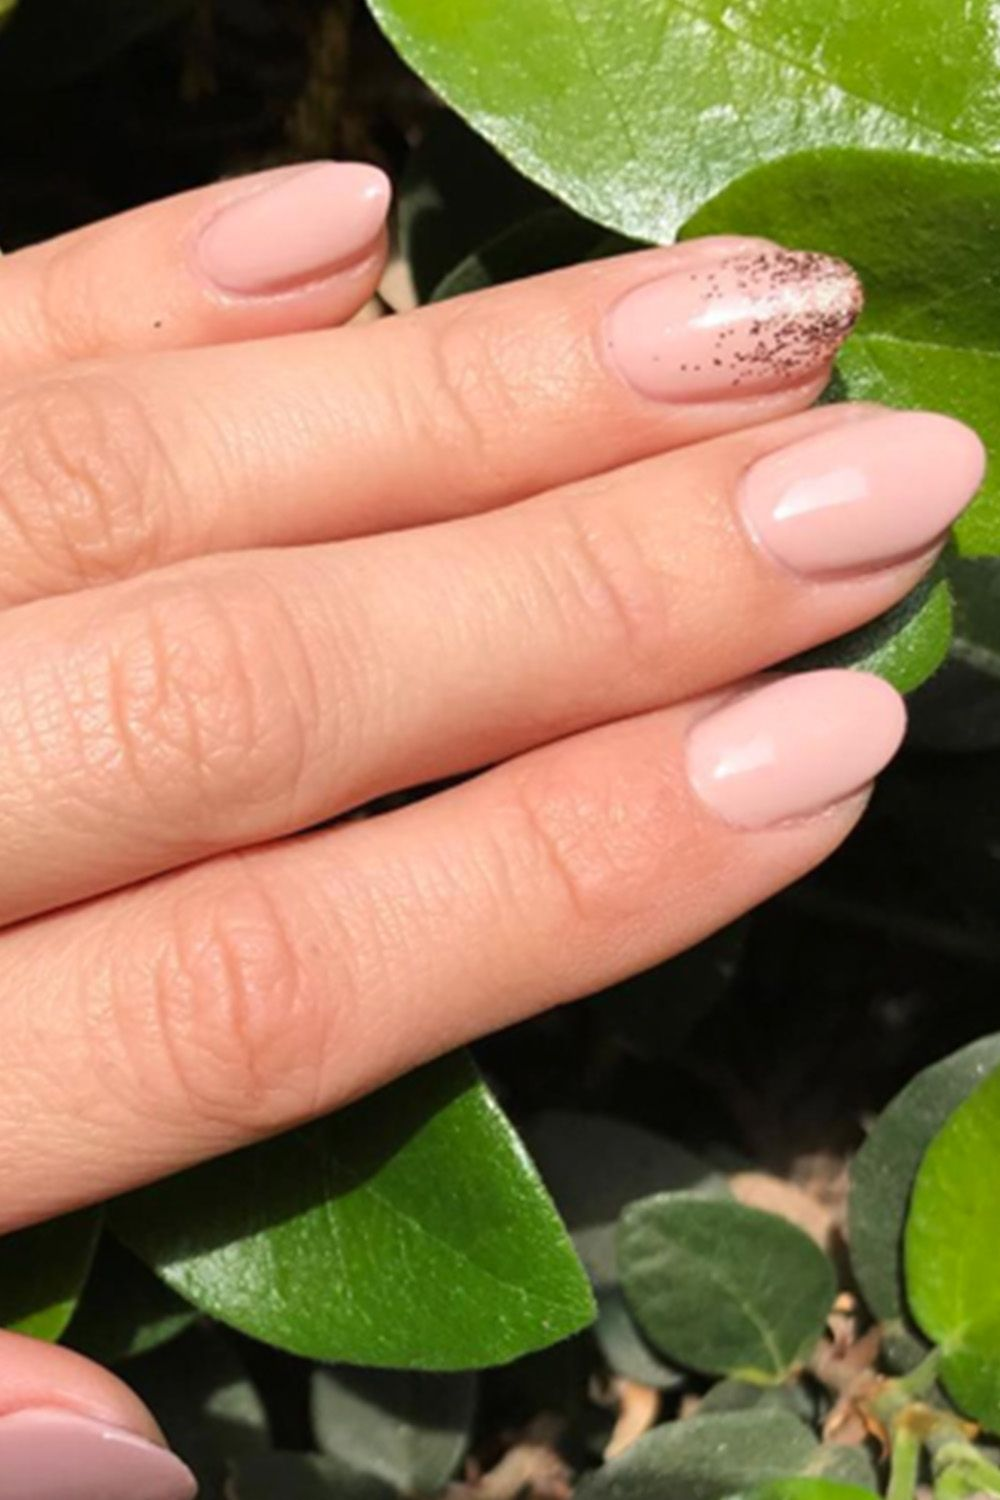 15 Almond Shaped Nail Designs Cute Ideas For Almond Nails